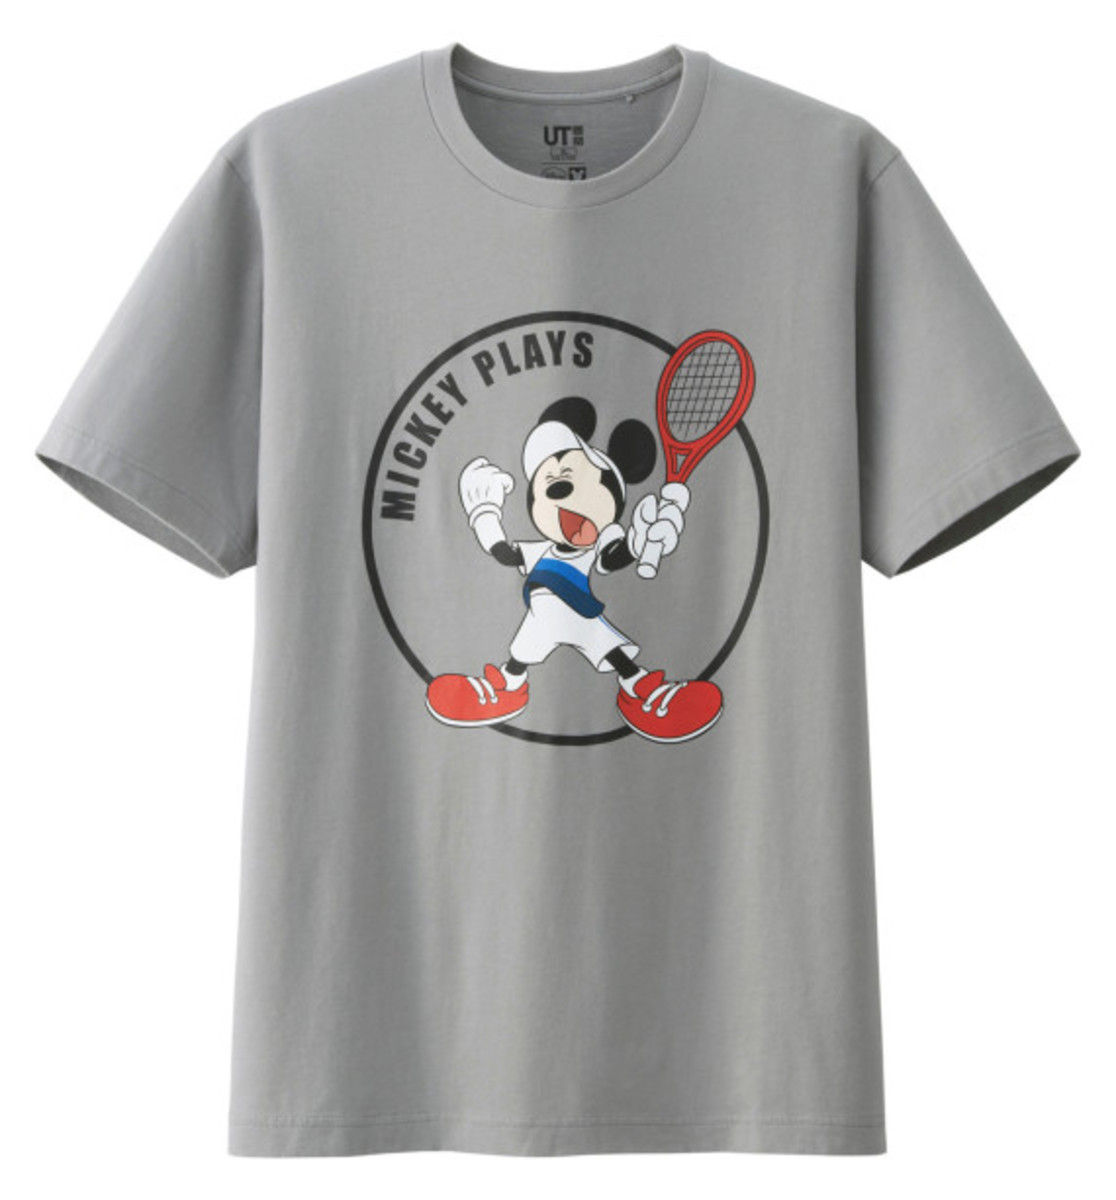 disney-uniqlo-mickey-plays-t-shirt-collection-02